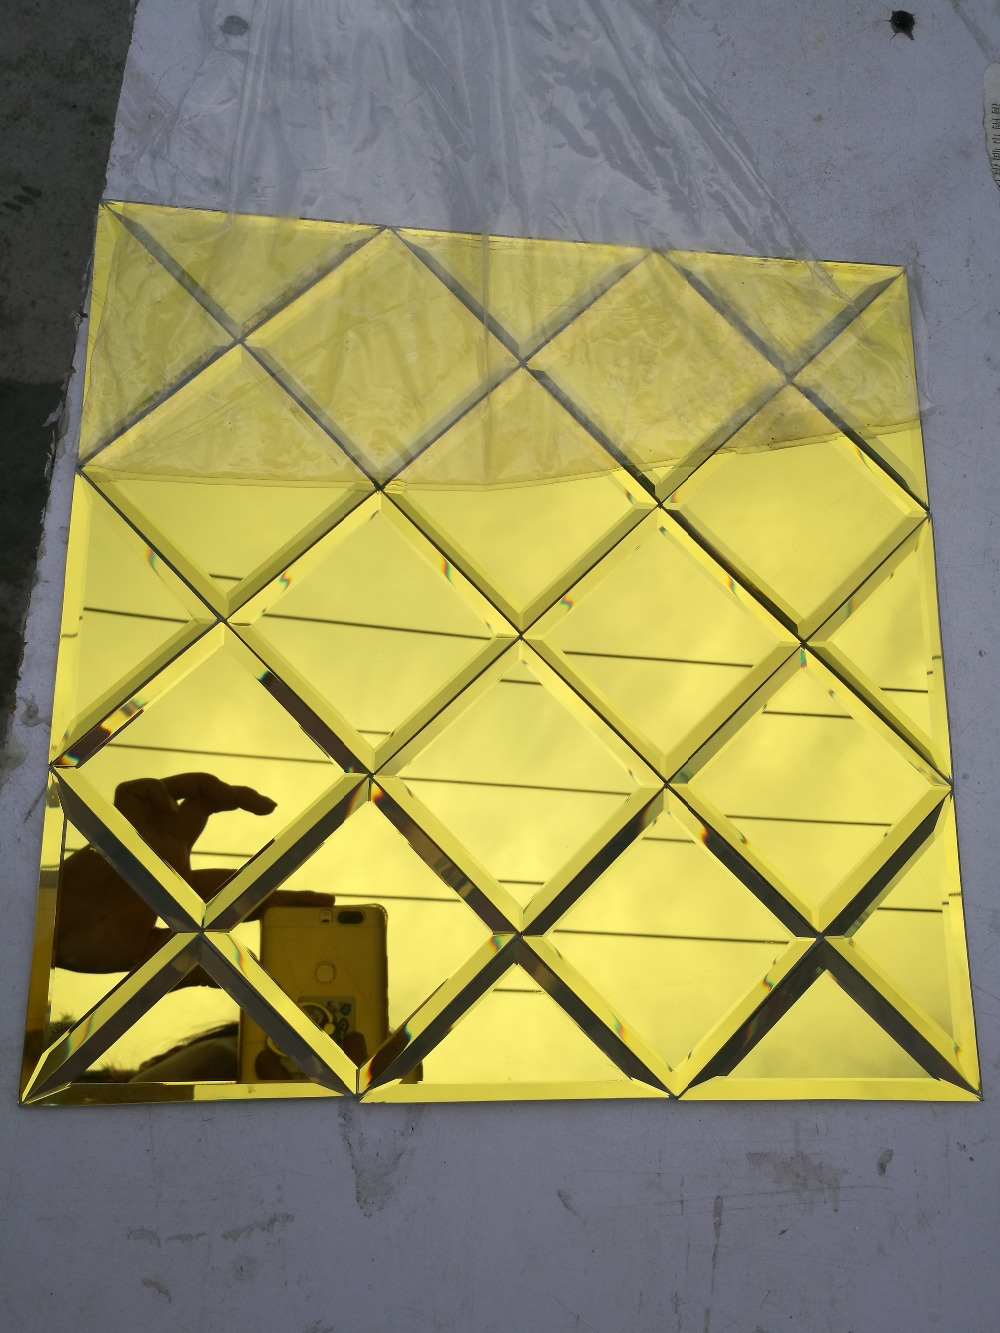 Puzzle art golden glass mirror mosaic tile showroom lobby ktv puzzle art golden glass mirror mosaic tile showroom lobby ktv display ceiling tile wall tile in wallpapers from home improvement on aliexpress dailygadgetfo Choice Image